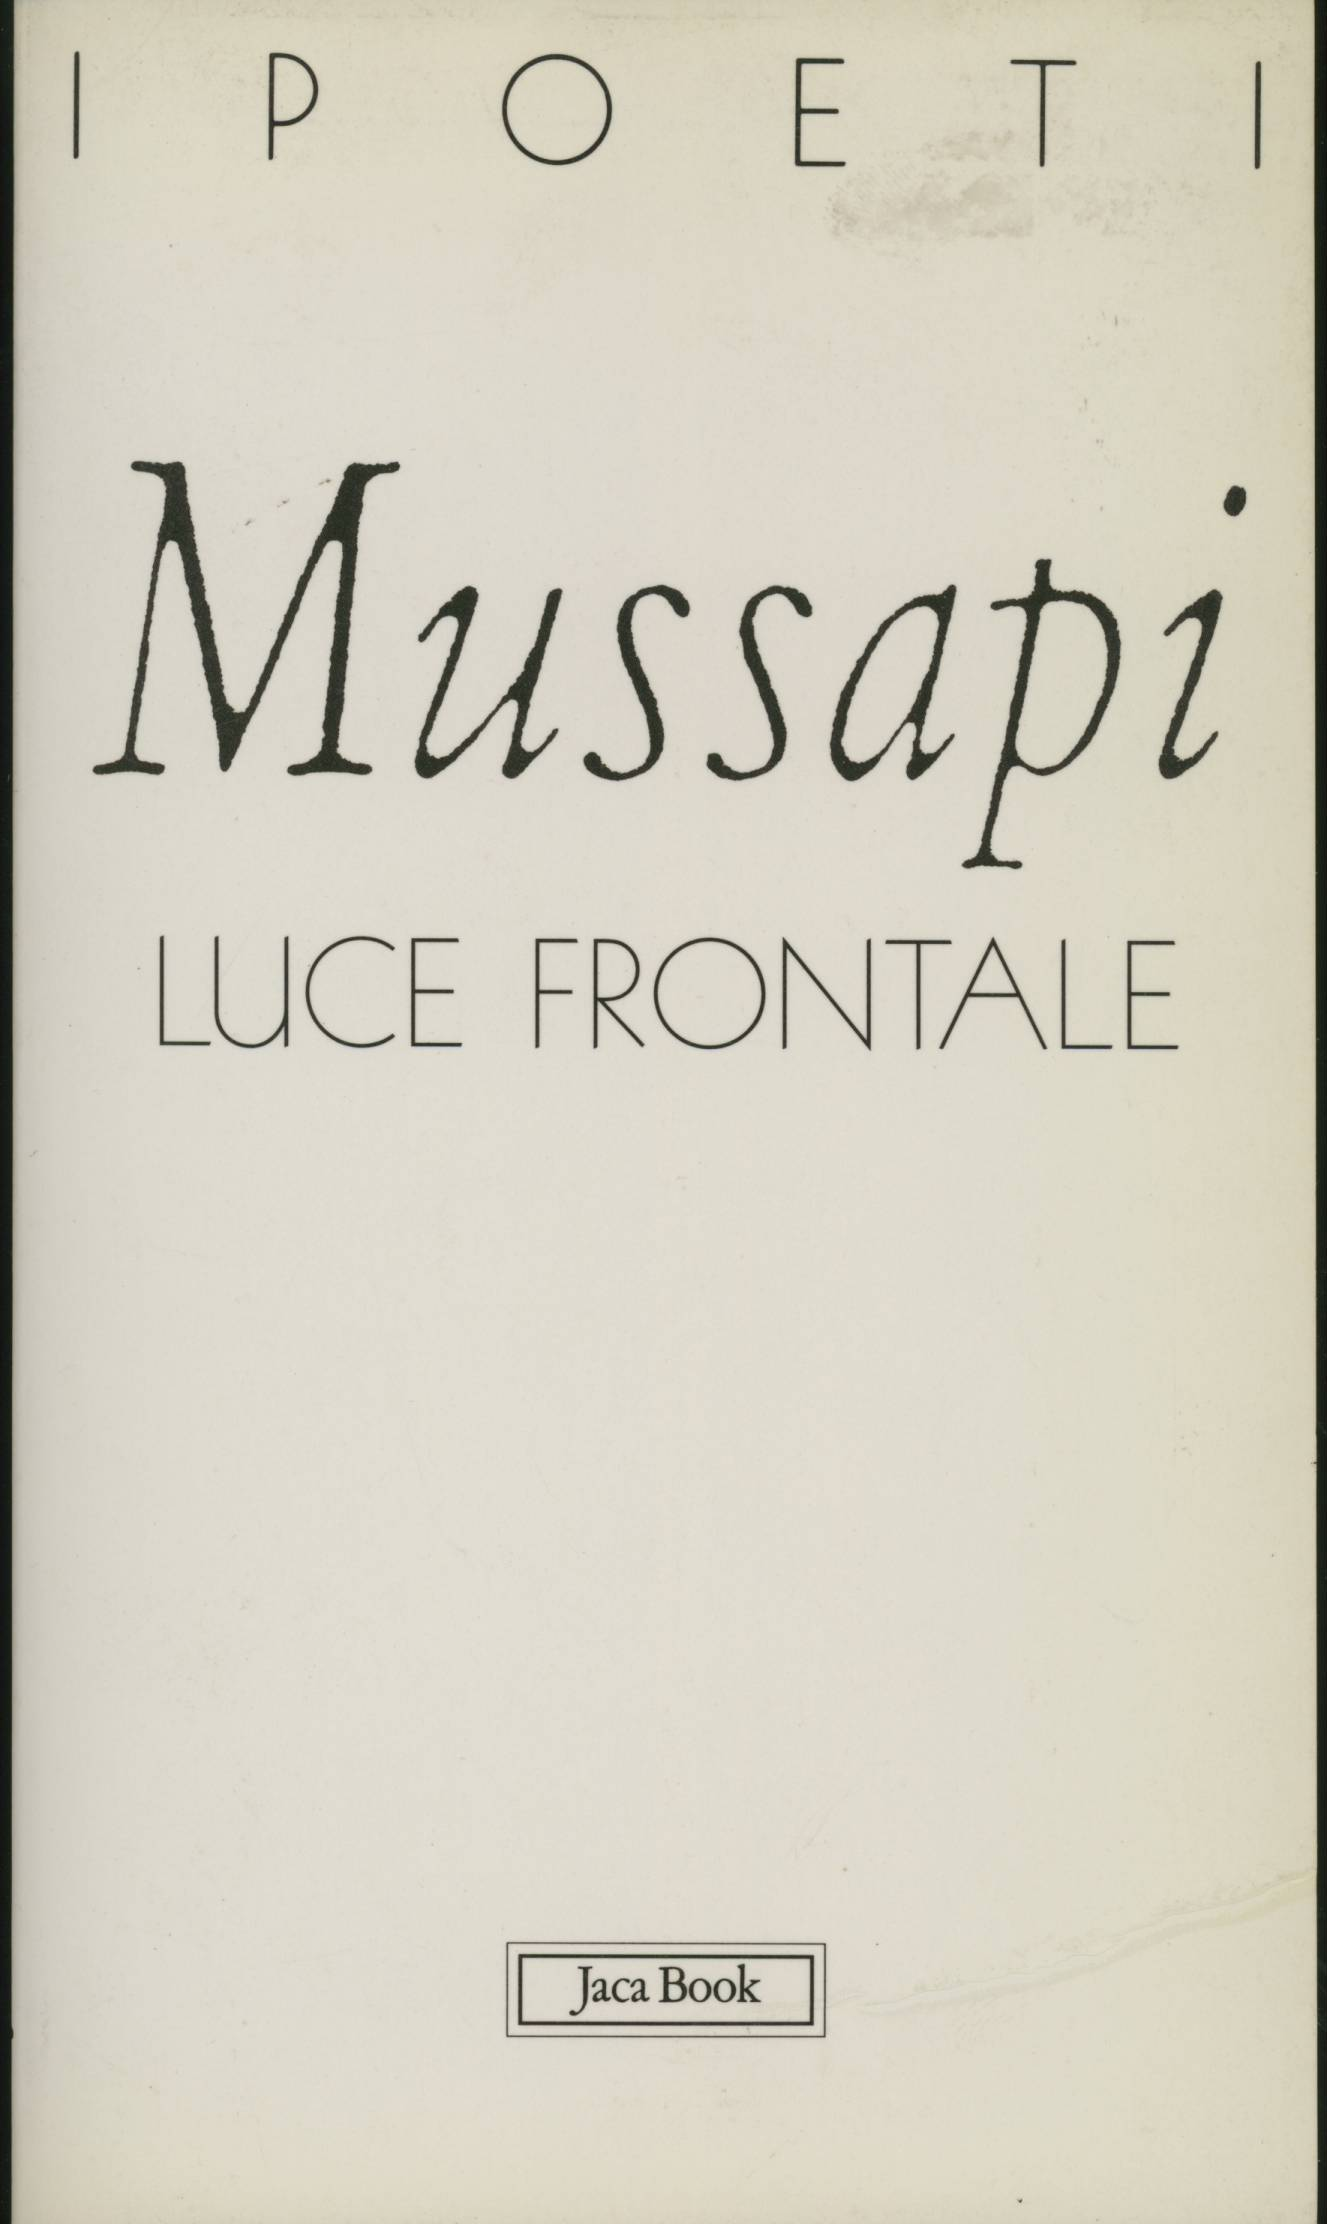 Luce frontale